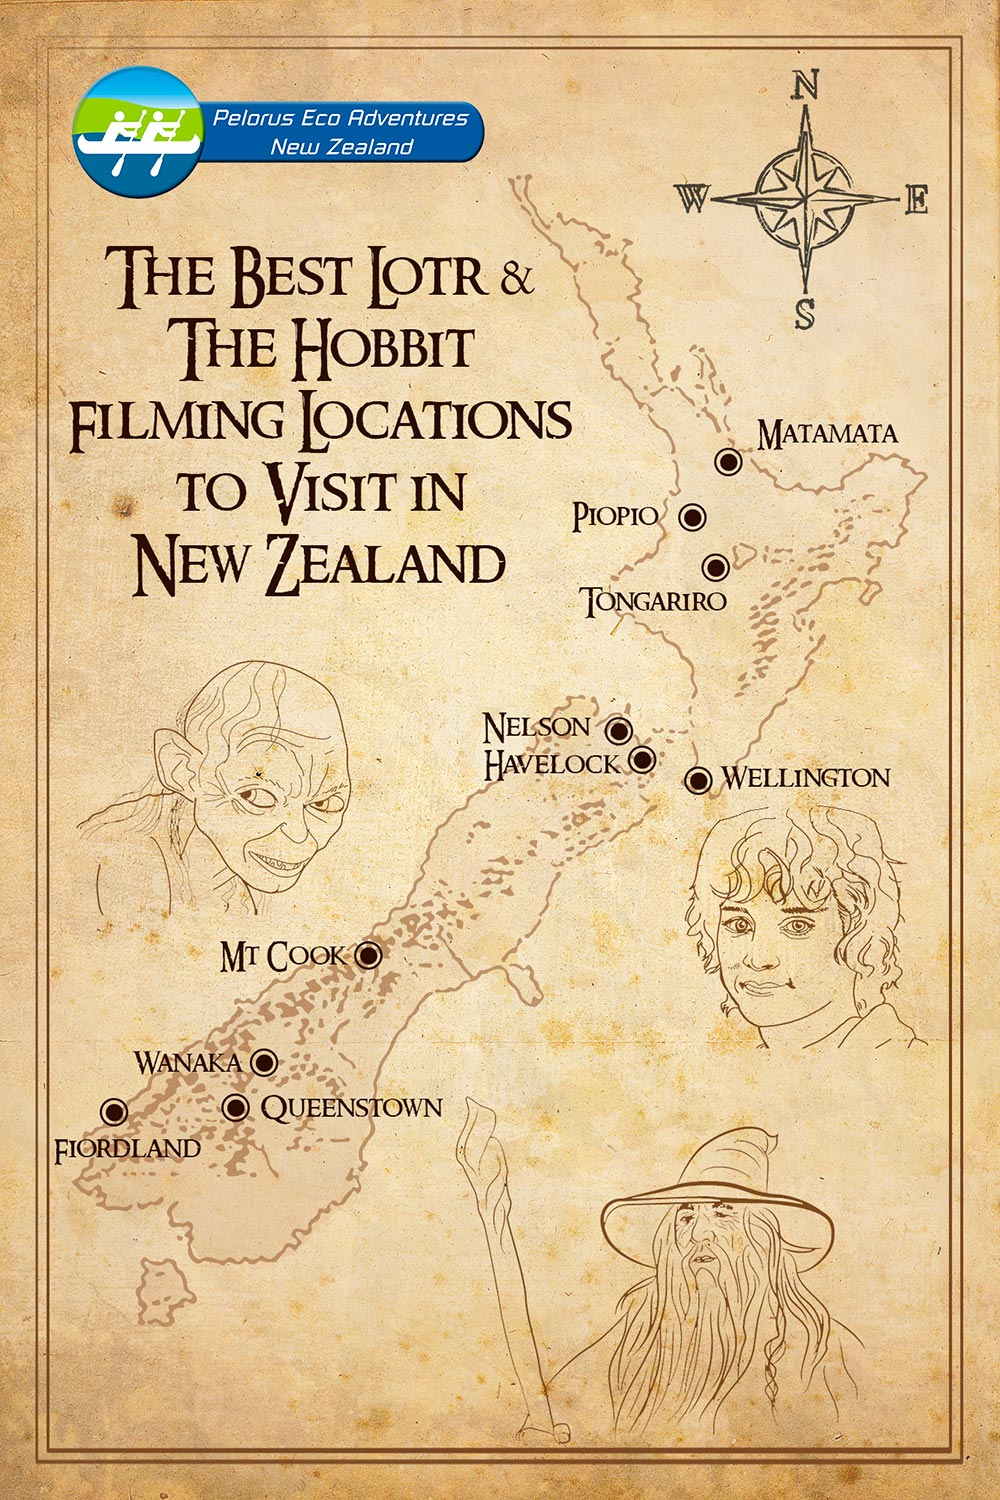 Lord of the Rings & The Hobbit Filming Locations | Kayak New Zealand